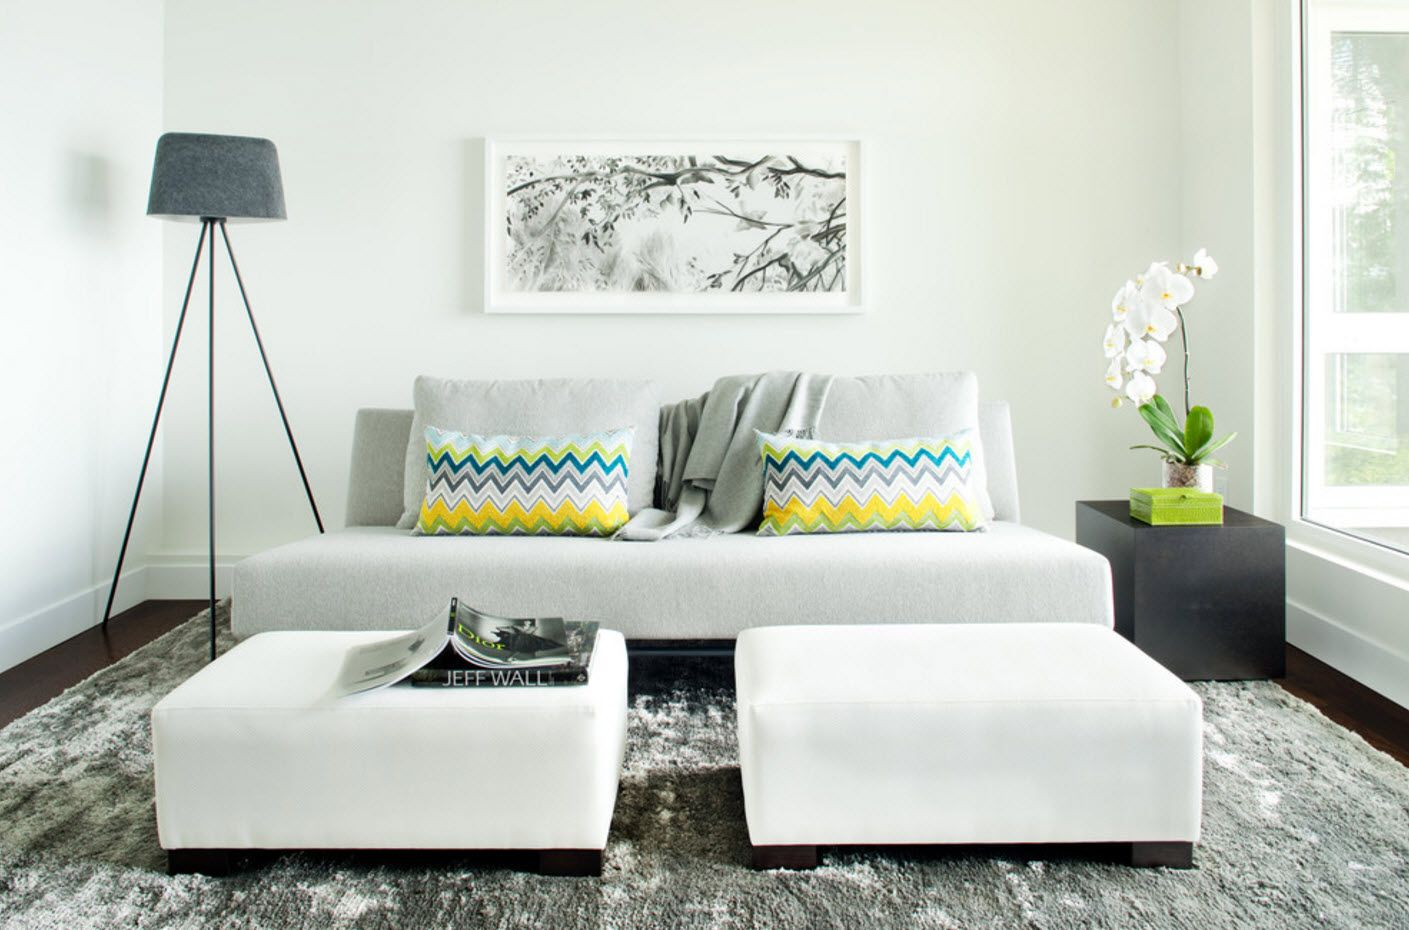 Living room with gray cushions at the sofa and two white upholstered coffe tables